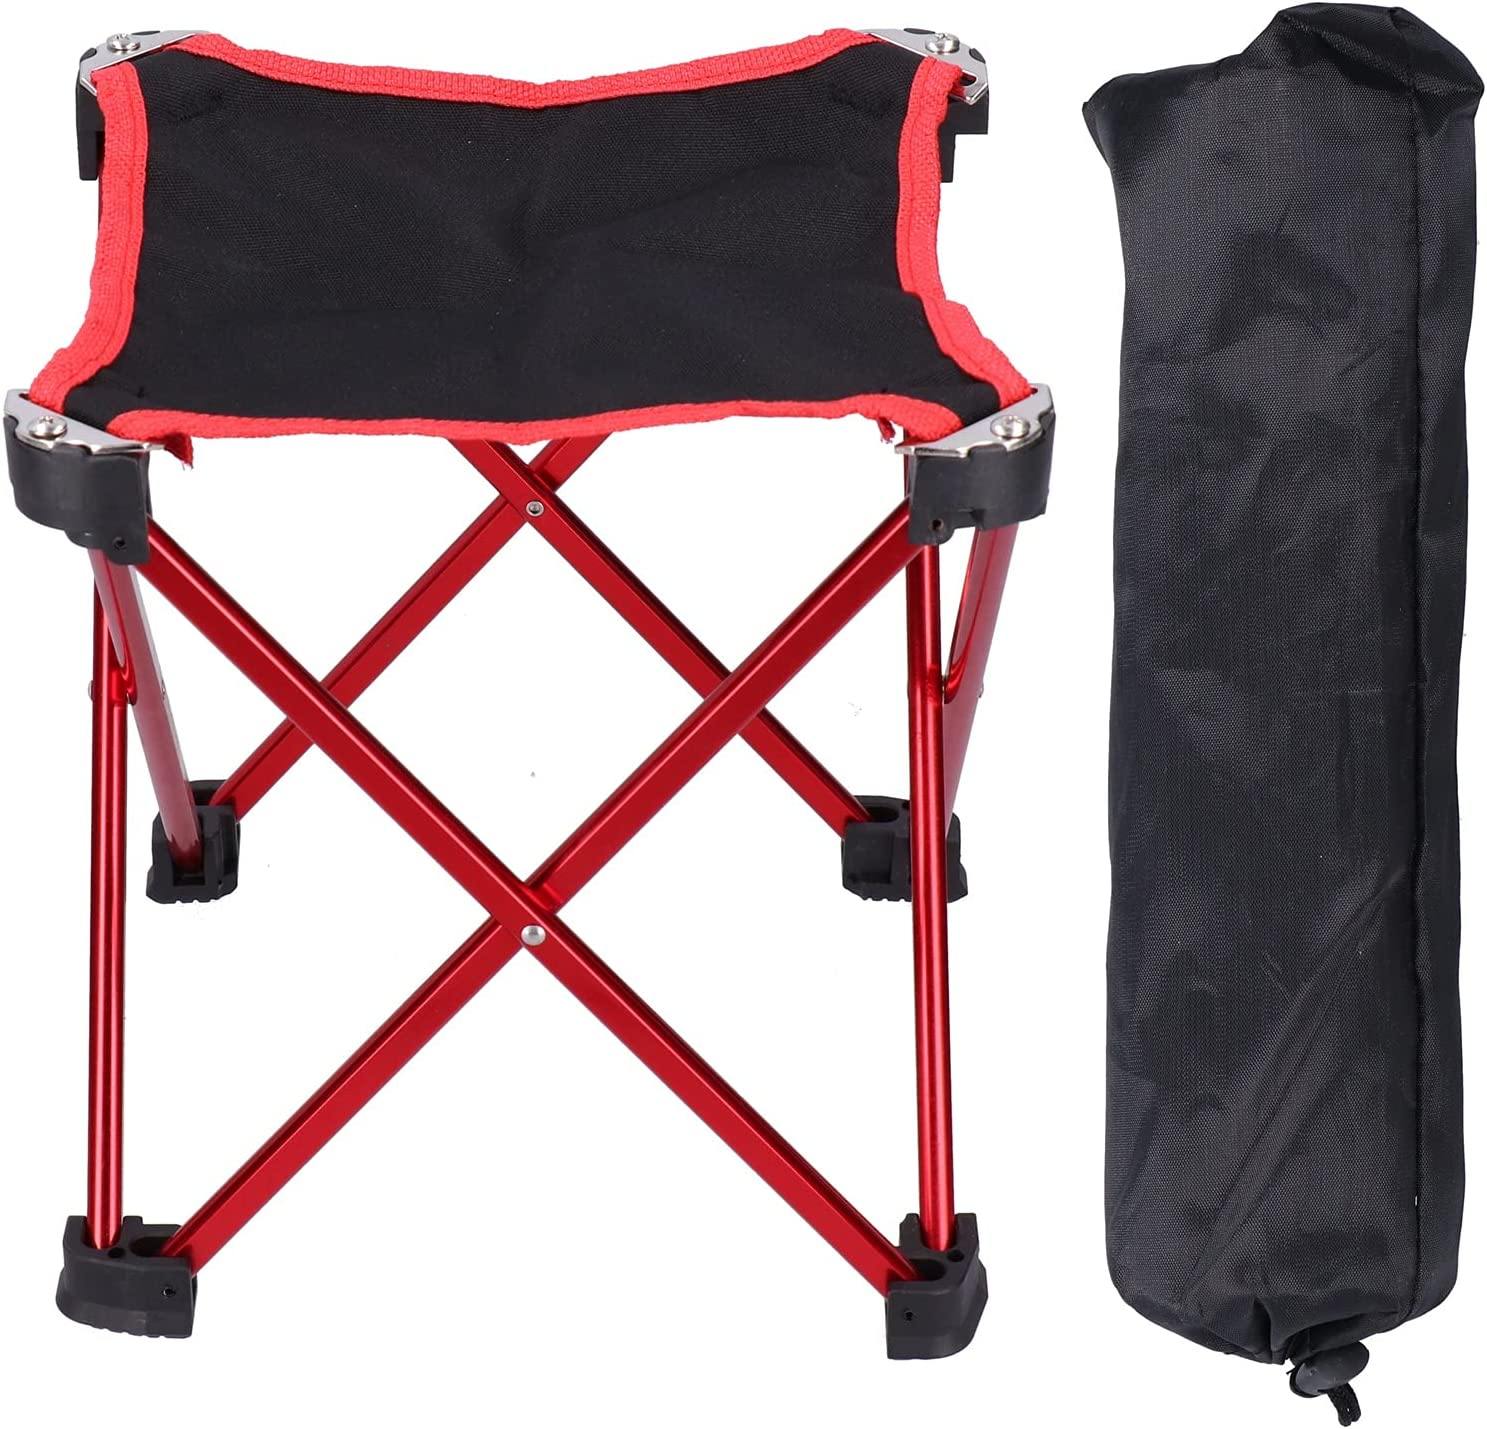 Okuyonic Raleigh Mall Fishing Chair Lightweight Folding latest Fi for Stool Camping